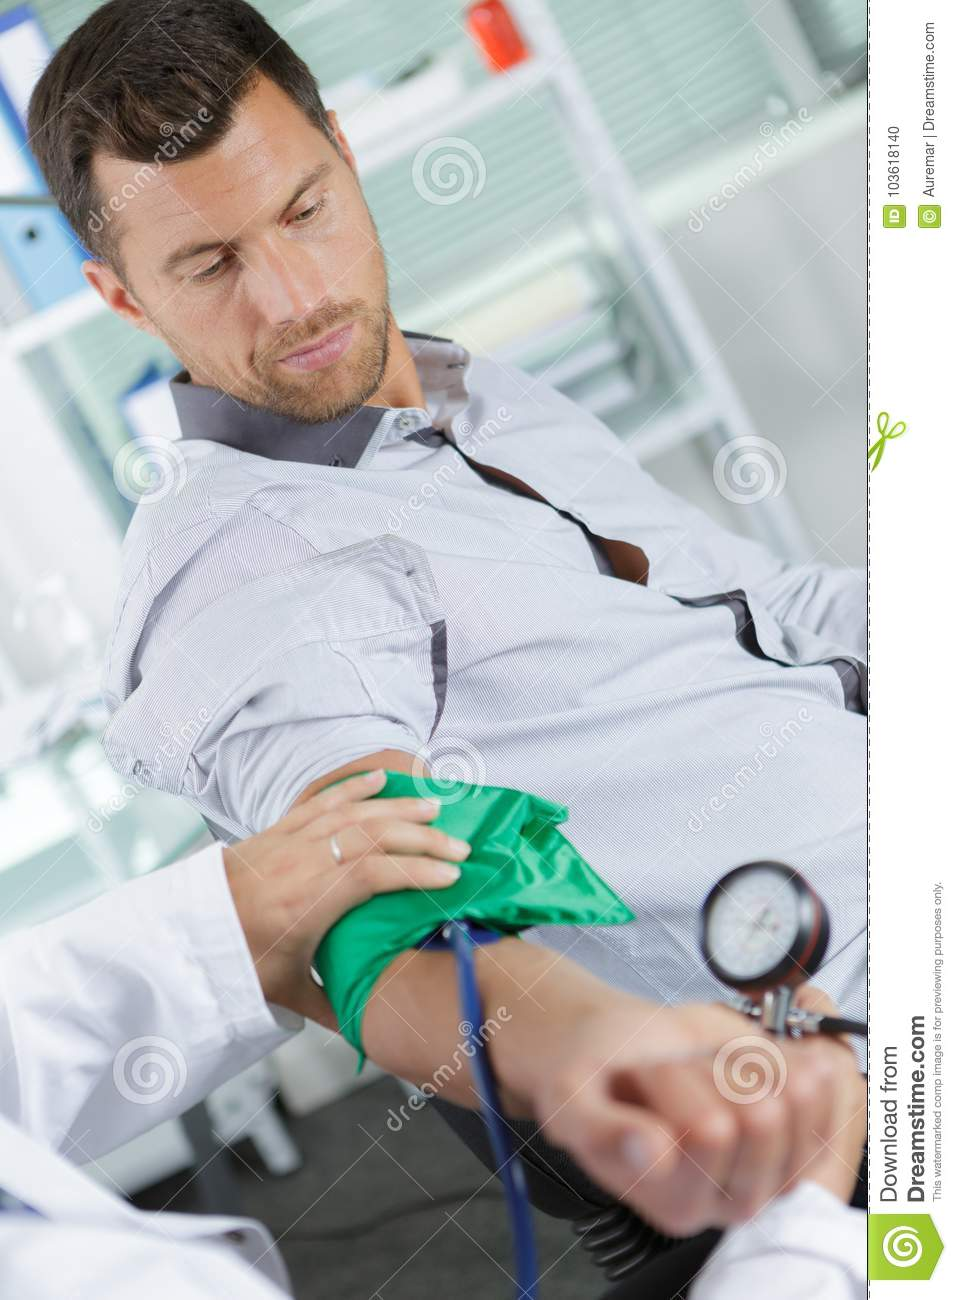 Doctor using sphygmomanometer to check blood pressure